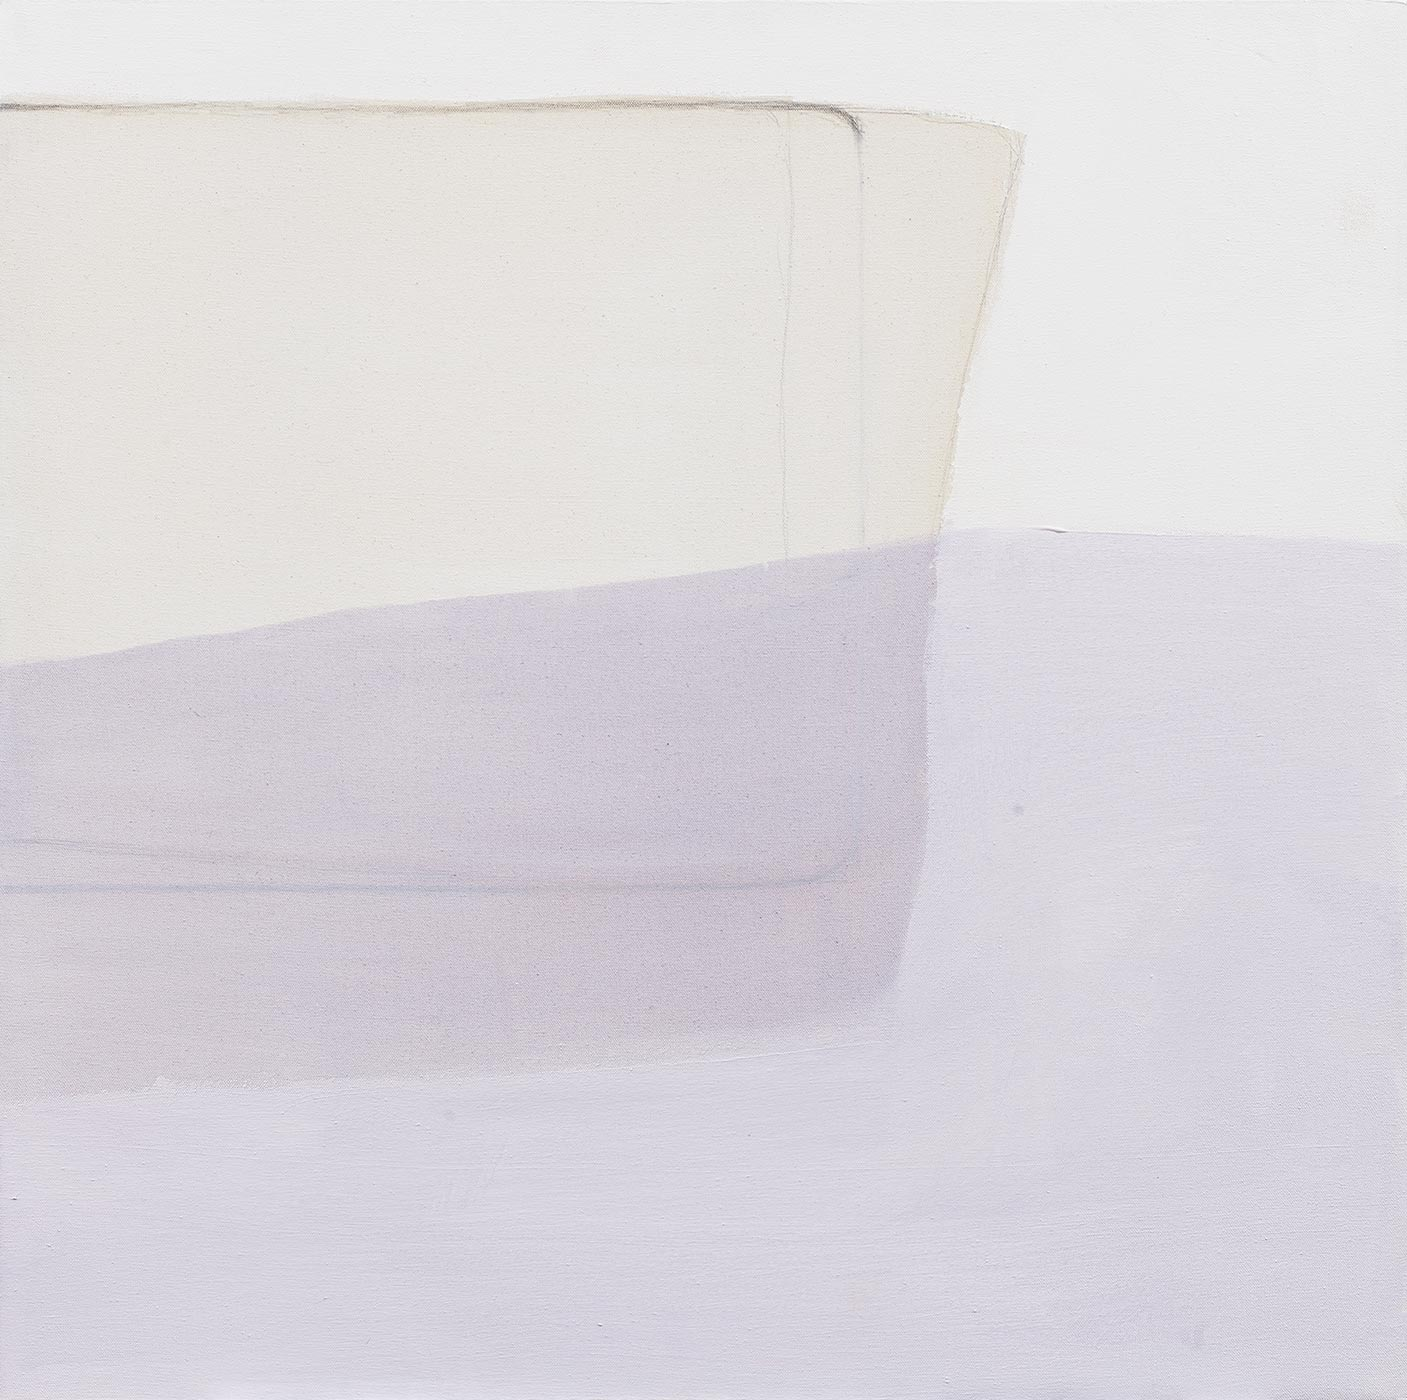 Sharon Kuo